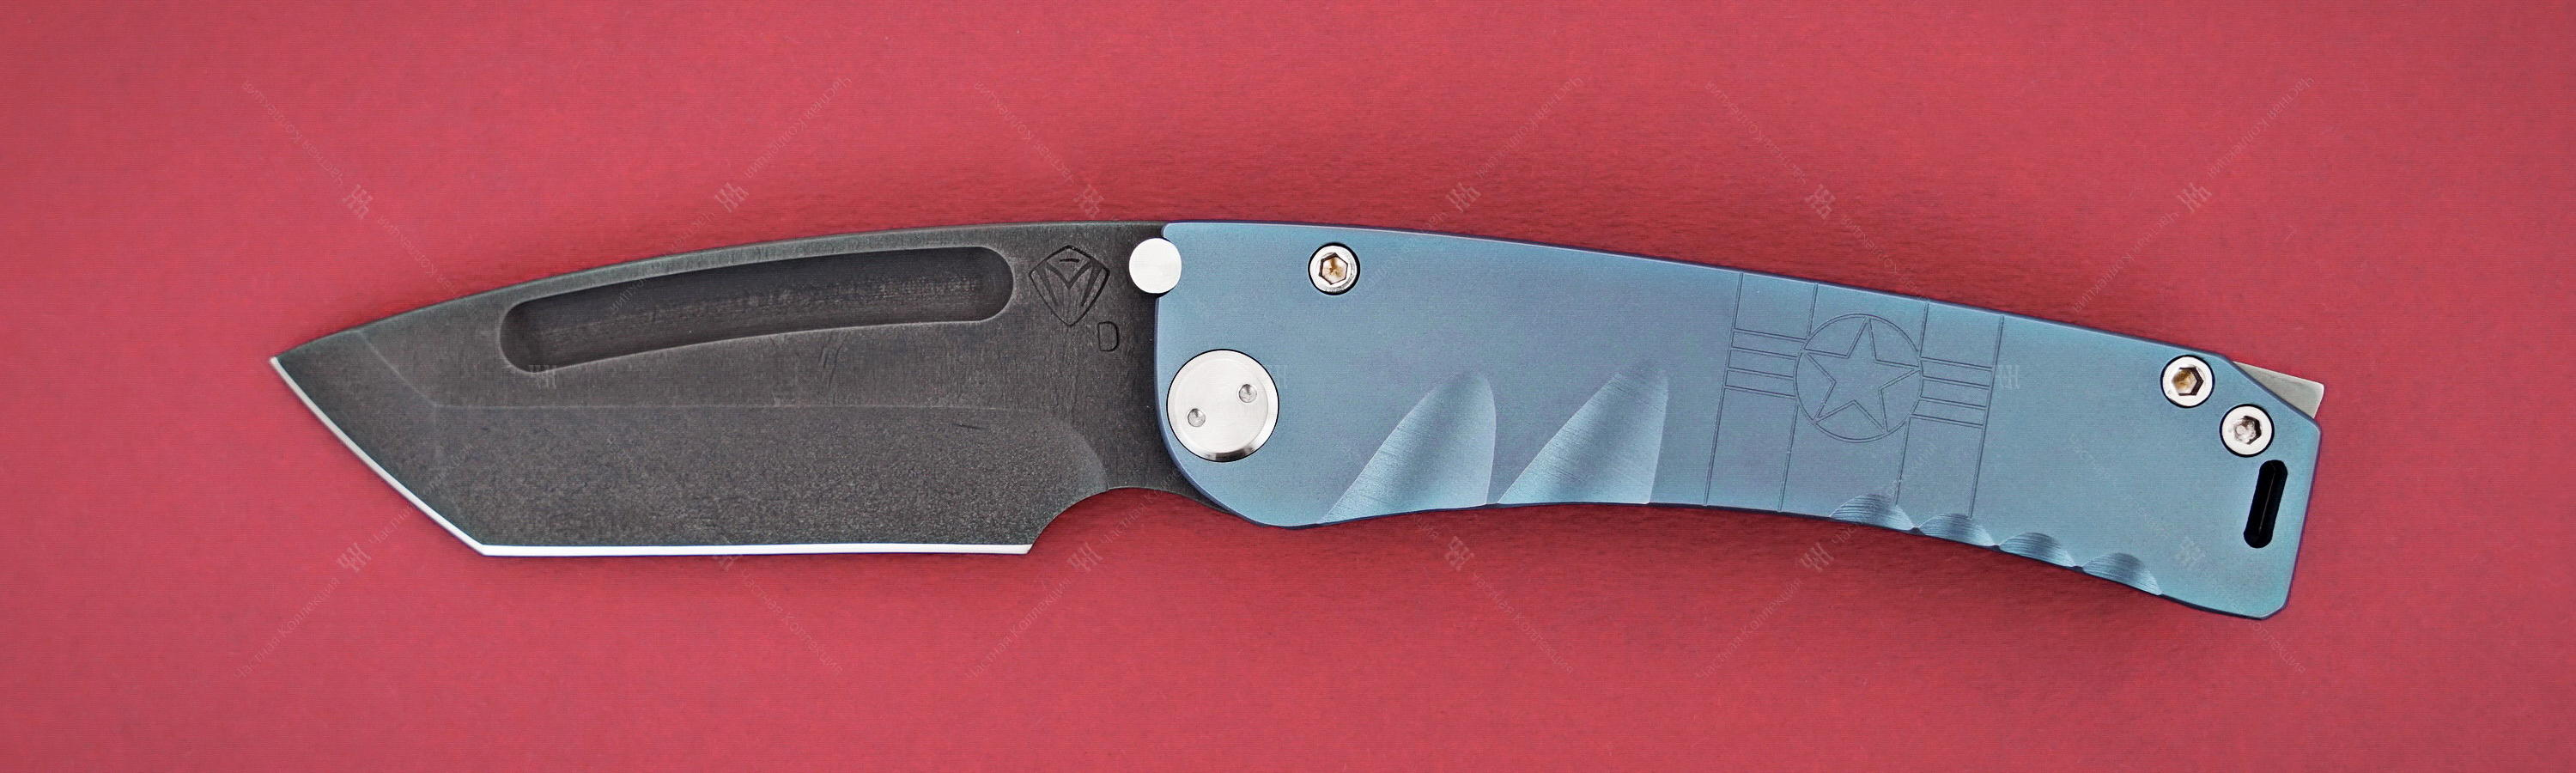 Нож Medford Knife and Tool Marauder